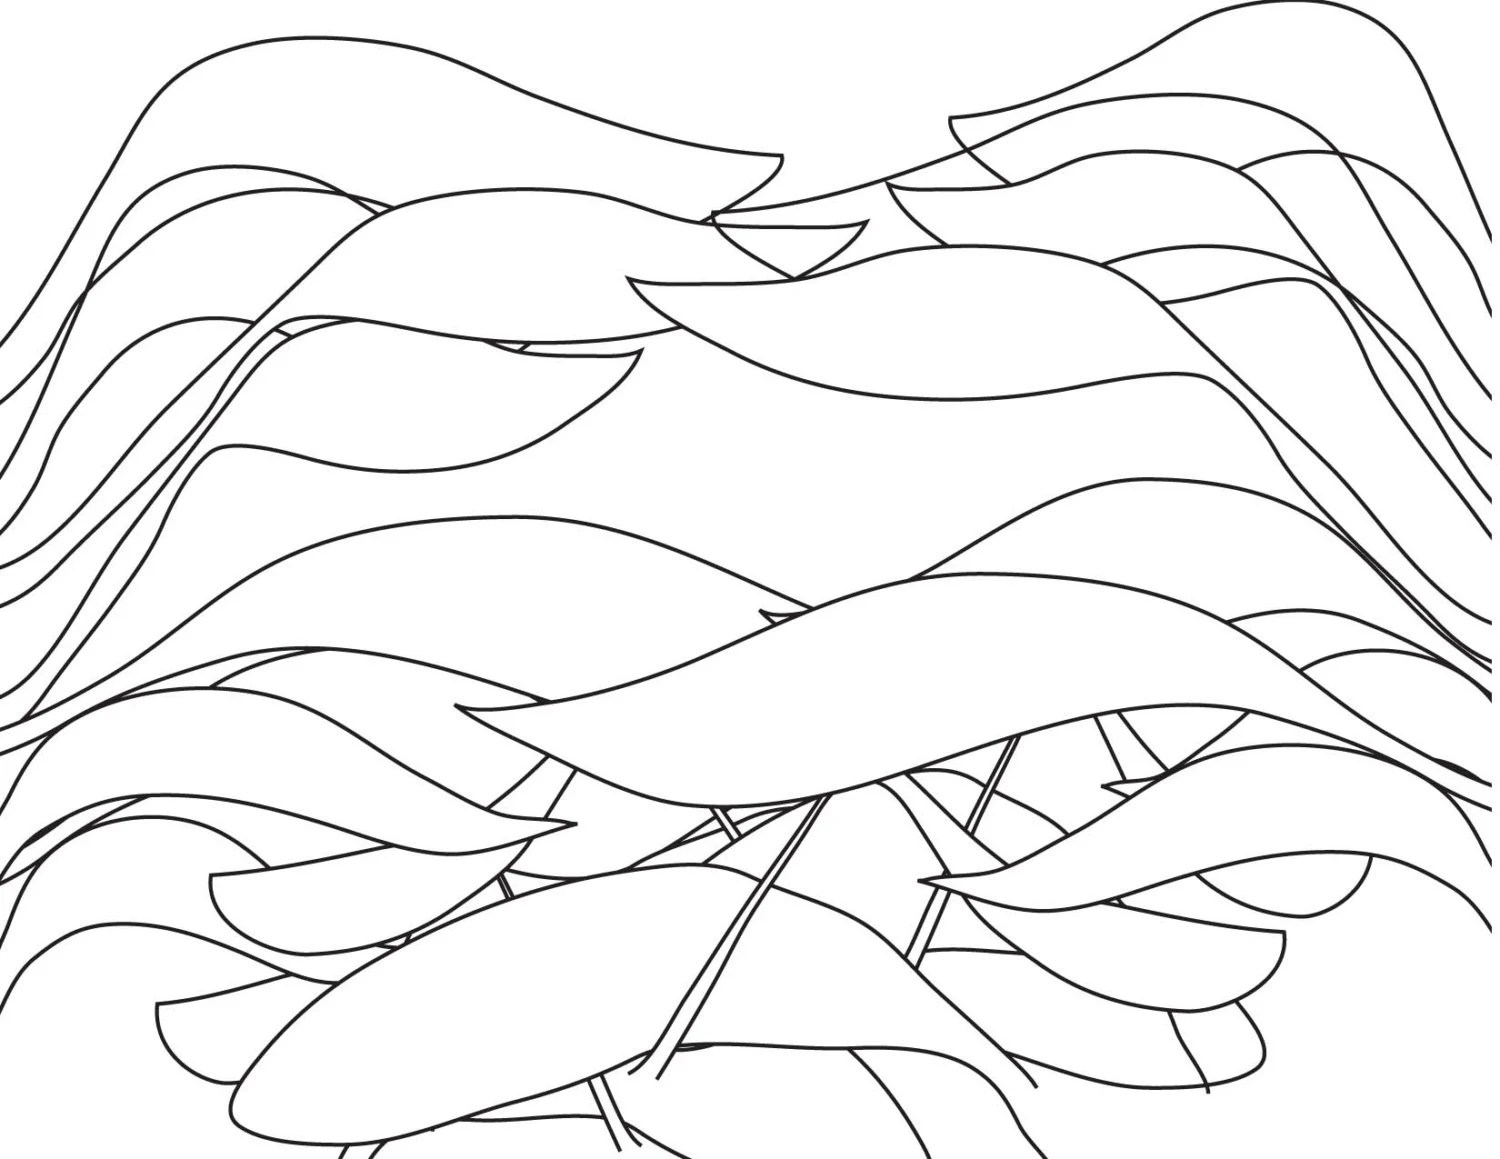 Adult Coloring Page-Ideas Blowing In The Wind Creative